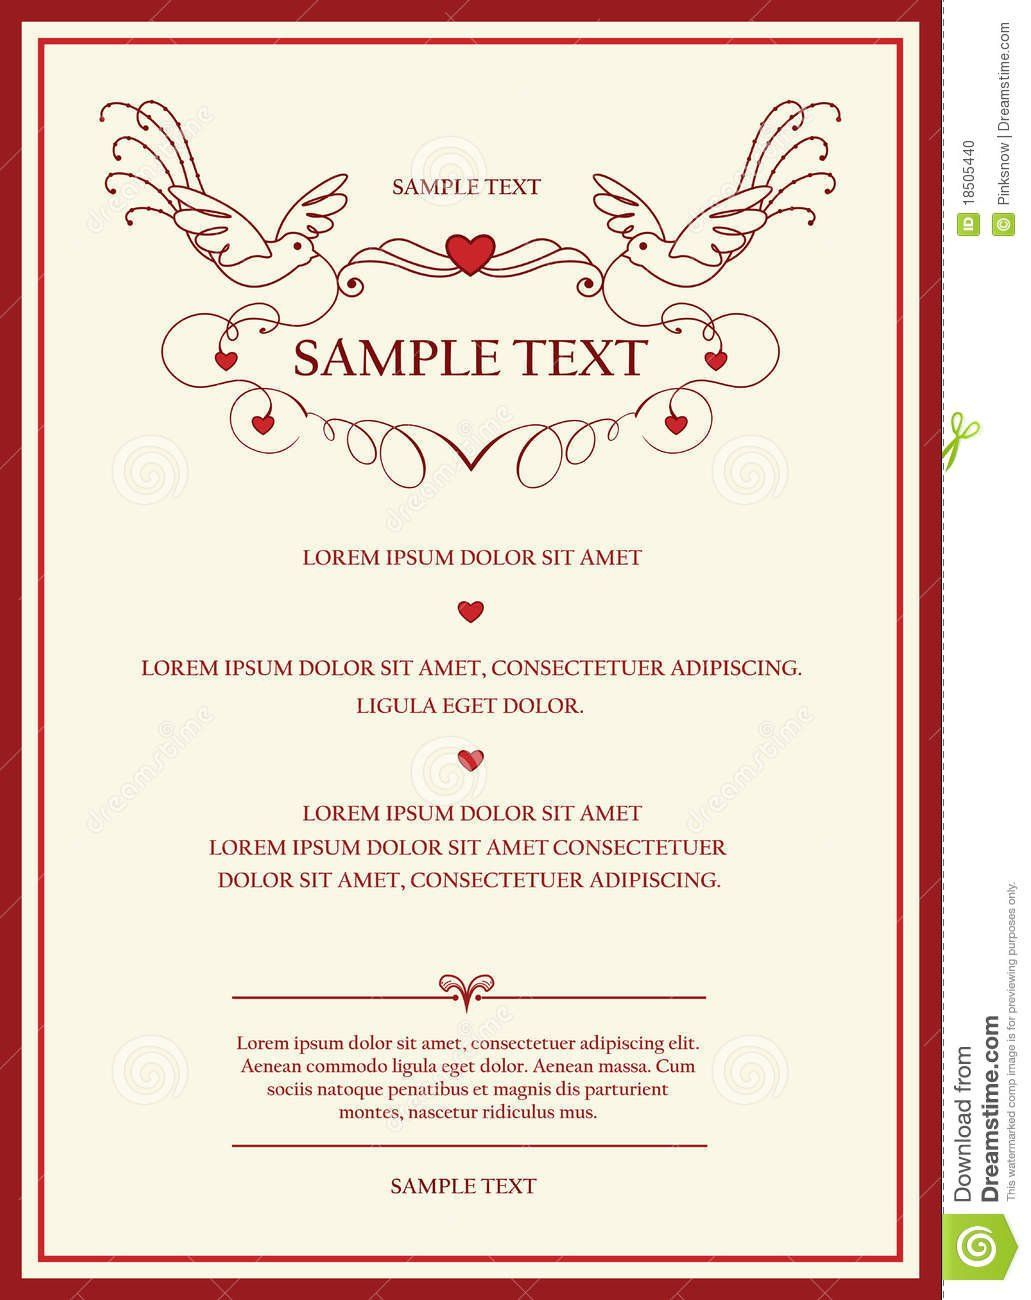 Wedding Invitation Cards Templates Marriage Invitation Card Indian Wedding Invitation Cards Rsvp Wedding Cards